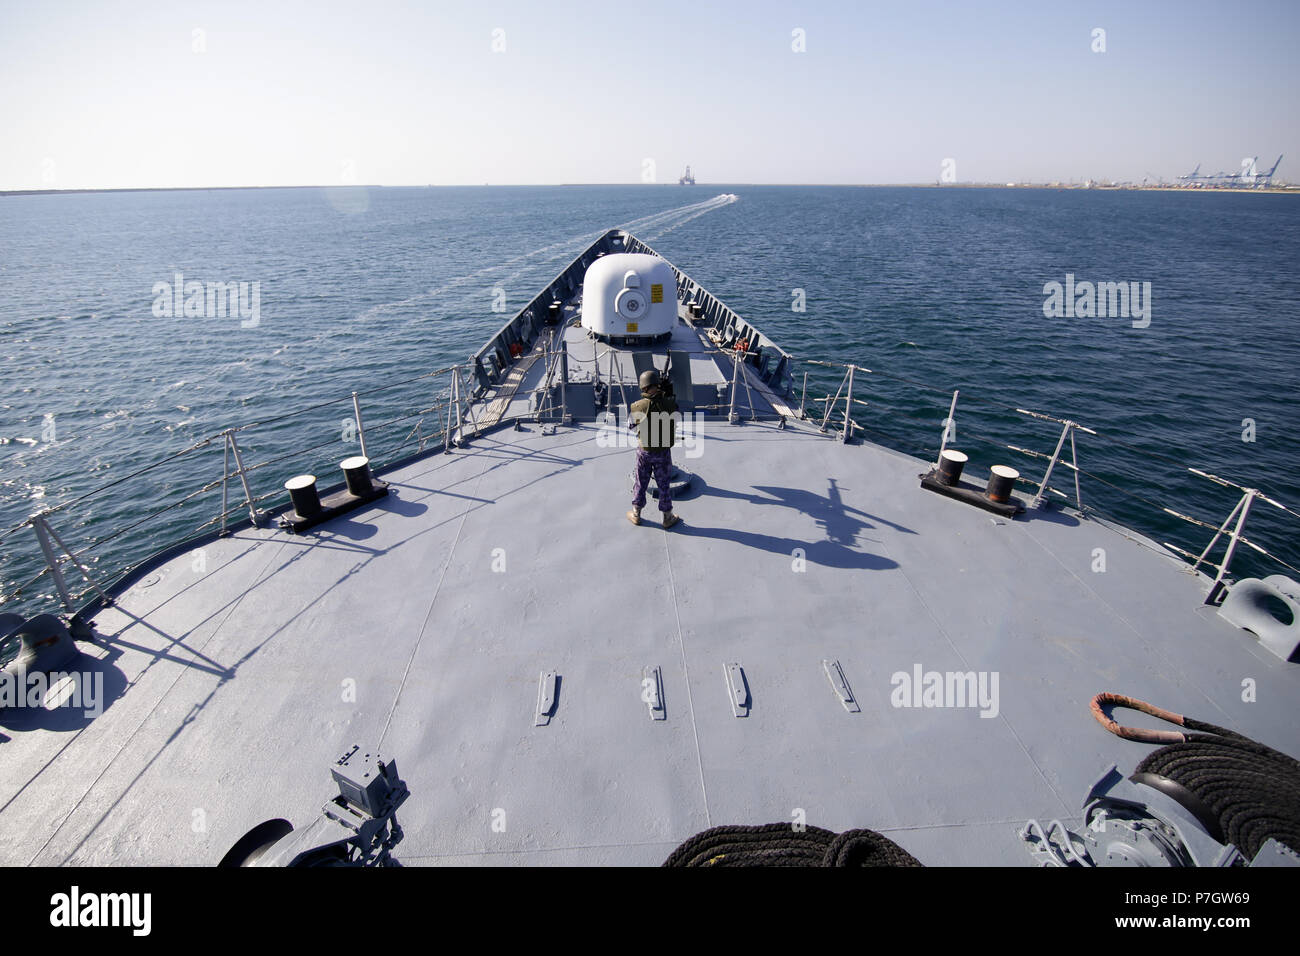 CONSTANTA, ROMANIA - JUNE 20, 2018: Romanian military sailor on deck of 'Regele Ferdinand' frigate mans a 50 caliber machine gun, on June 20. - Stock Image